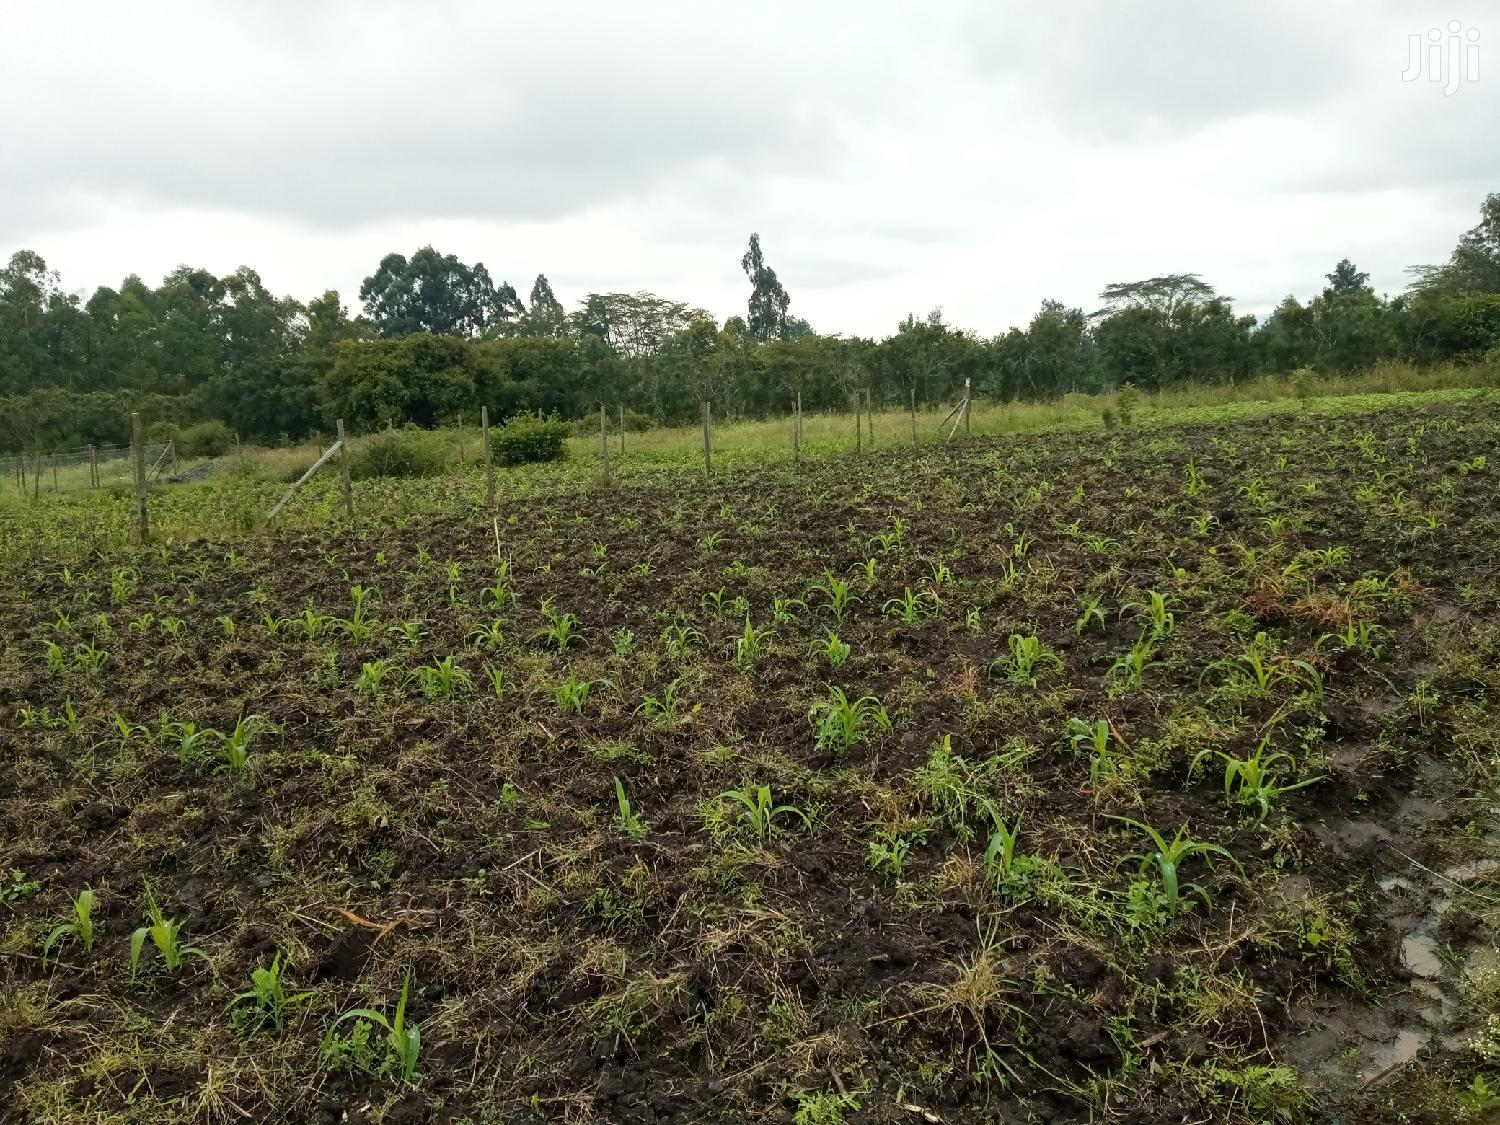 1/8 Acre for Sale in Kadisi | Land & Plots For Sale for sale in Ongata Rongai, Kajiado, Kenya